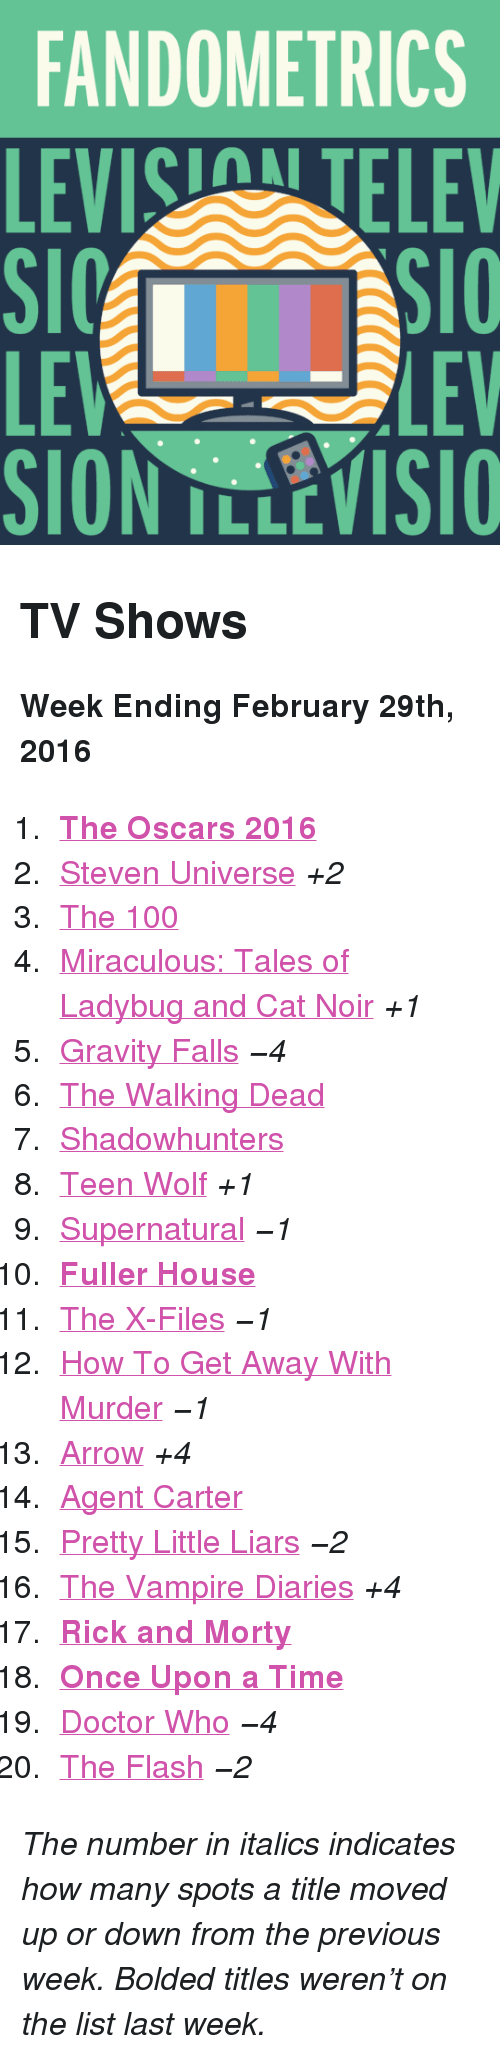 """Anaconda, Doctor, and Oscars: FANDOMETRICS  LEVIS TELEV  LE  SION TLLEVISIO  LEV <h2>TV Shows</h2><p><b>Week Ending February 29th, 2016</b></p><ol><li><a href=""""http://www.tumblr.com/search/oscars""""><b>The Oscars 2016</b></a></li>  <li><a href=""""http://www.tumblr.com/search/steven%20universe"""">Steven Universe</a><i>+2</i></li>  <li><a href=""""http://www.tumblr.com/search/the%20100"""">The 100</a></li>  <li><a href=""""http://www.tumblr.com/search/miraculous%20ladybug"""">Miraculous: Tales of Ladybug and Cat Noir</a><i>+1</i></li>  <li><a href=""""http://www.tumblr.com/search/gravity%20falls"""">Gravity Falls</a><i>−4</i></li>  <li><a href=""""http://www.tumblr.com/search/the%20walking%20dead"""">The Walking Dead</a></li>  <li><a href=""""http://www.tumblr.com/search/shadowhunters"""">Shadowhunters</a></li>  <li><a href=""""http://www.tumblr.com/search/teen%20wolf"""">Teen Wolf</a><i>+1</i></li>  <li><a href=""""http://www.tumblr.com/search/supernatural"""">Supernatural</a><i>−1</i></li>  <li><a href=""""http://www.tumblr.com/search/fuller%20house""""><b>Fuller House</b></a></li>  <li><a href=""""http://www.tumblr.com/search/x%20files"""">The X-Files</a><i>−1</i></li>  <li><a href=""""http://www.tumblr.com/search/how%20to%20get%20away%20with%20murder"""">How To Get Away With Murder</a><i>−1</i></li>  <li><a href=""""http://www.tumblr.com/search/arrow"""">Arrow</a><i>+4</i></li>  <li><a href=""""http://www.tumblr.com/search/agent%20carter"""">Agent Carter</a></li>  <li><a href=""""http://www.tumblr.com/search/pretty%20little%20liars"""">Pretty Little Liars</a><i>−2</i></li>  <li><a href=""""http://www.tumblr.com/search/the%20vampire%20diaries"""">The Vampire Diaries</a><i>+4</i></li>  <li><a href=""""http://www.tumblr.com/search/rick%20and%20morty""""><b>Rick and Morty</b></a></li>  <li><a href=""""http://www.tumblr.com/search/ouat""""><b>Once Upon a Time</b></a></li>  <li><a href=""""http://www.tumblr.com/search/doctor%20who"""">Doctor Who</a><i>−4</i></li>  <li><a href=""""http://www.tumblr.com/search/the%20flash"""">The Flash</a><i>−2</i></li></ol><p><i>The number in italic"""